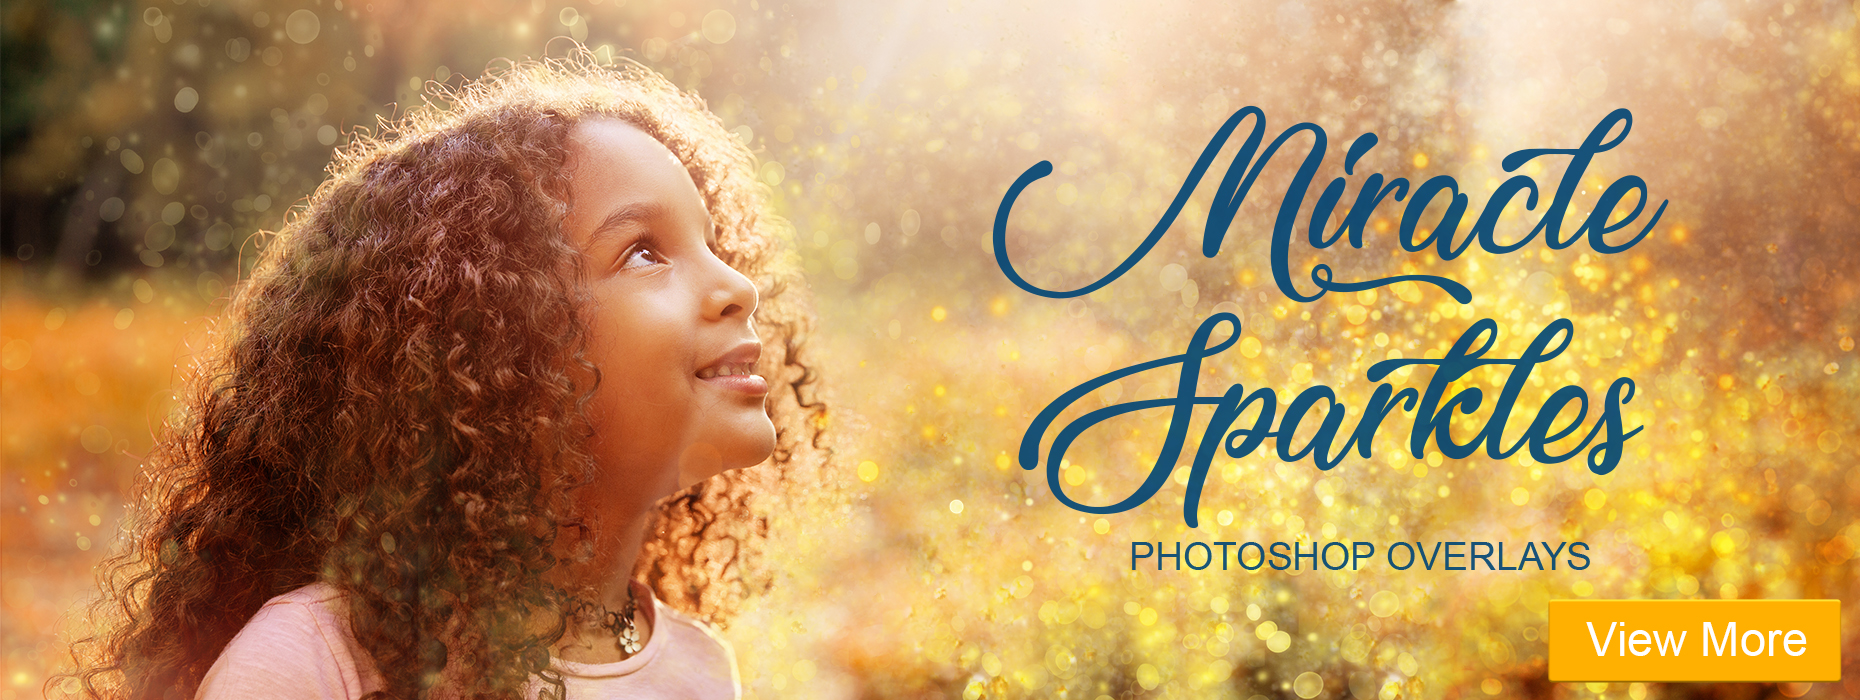 sun flare overlay photoshop free miracle sparkles photoshop overlays banner girl